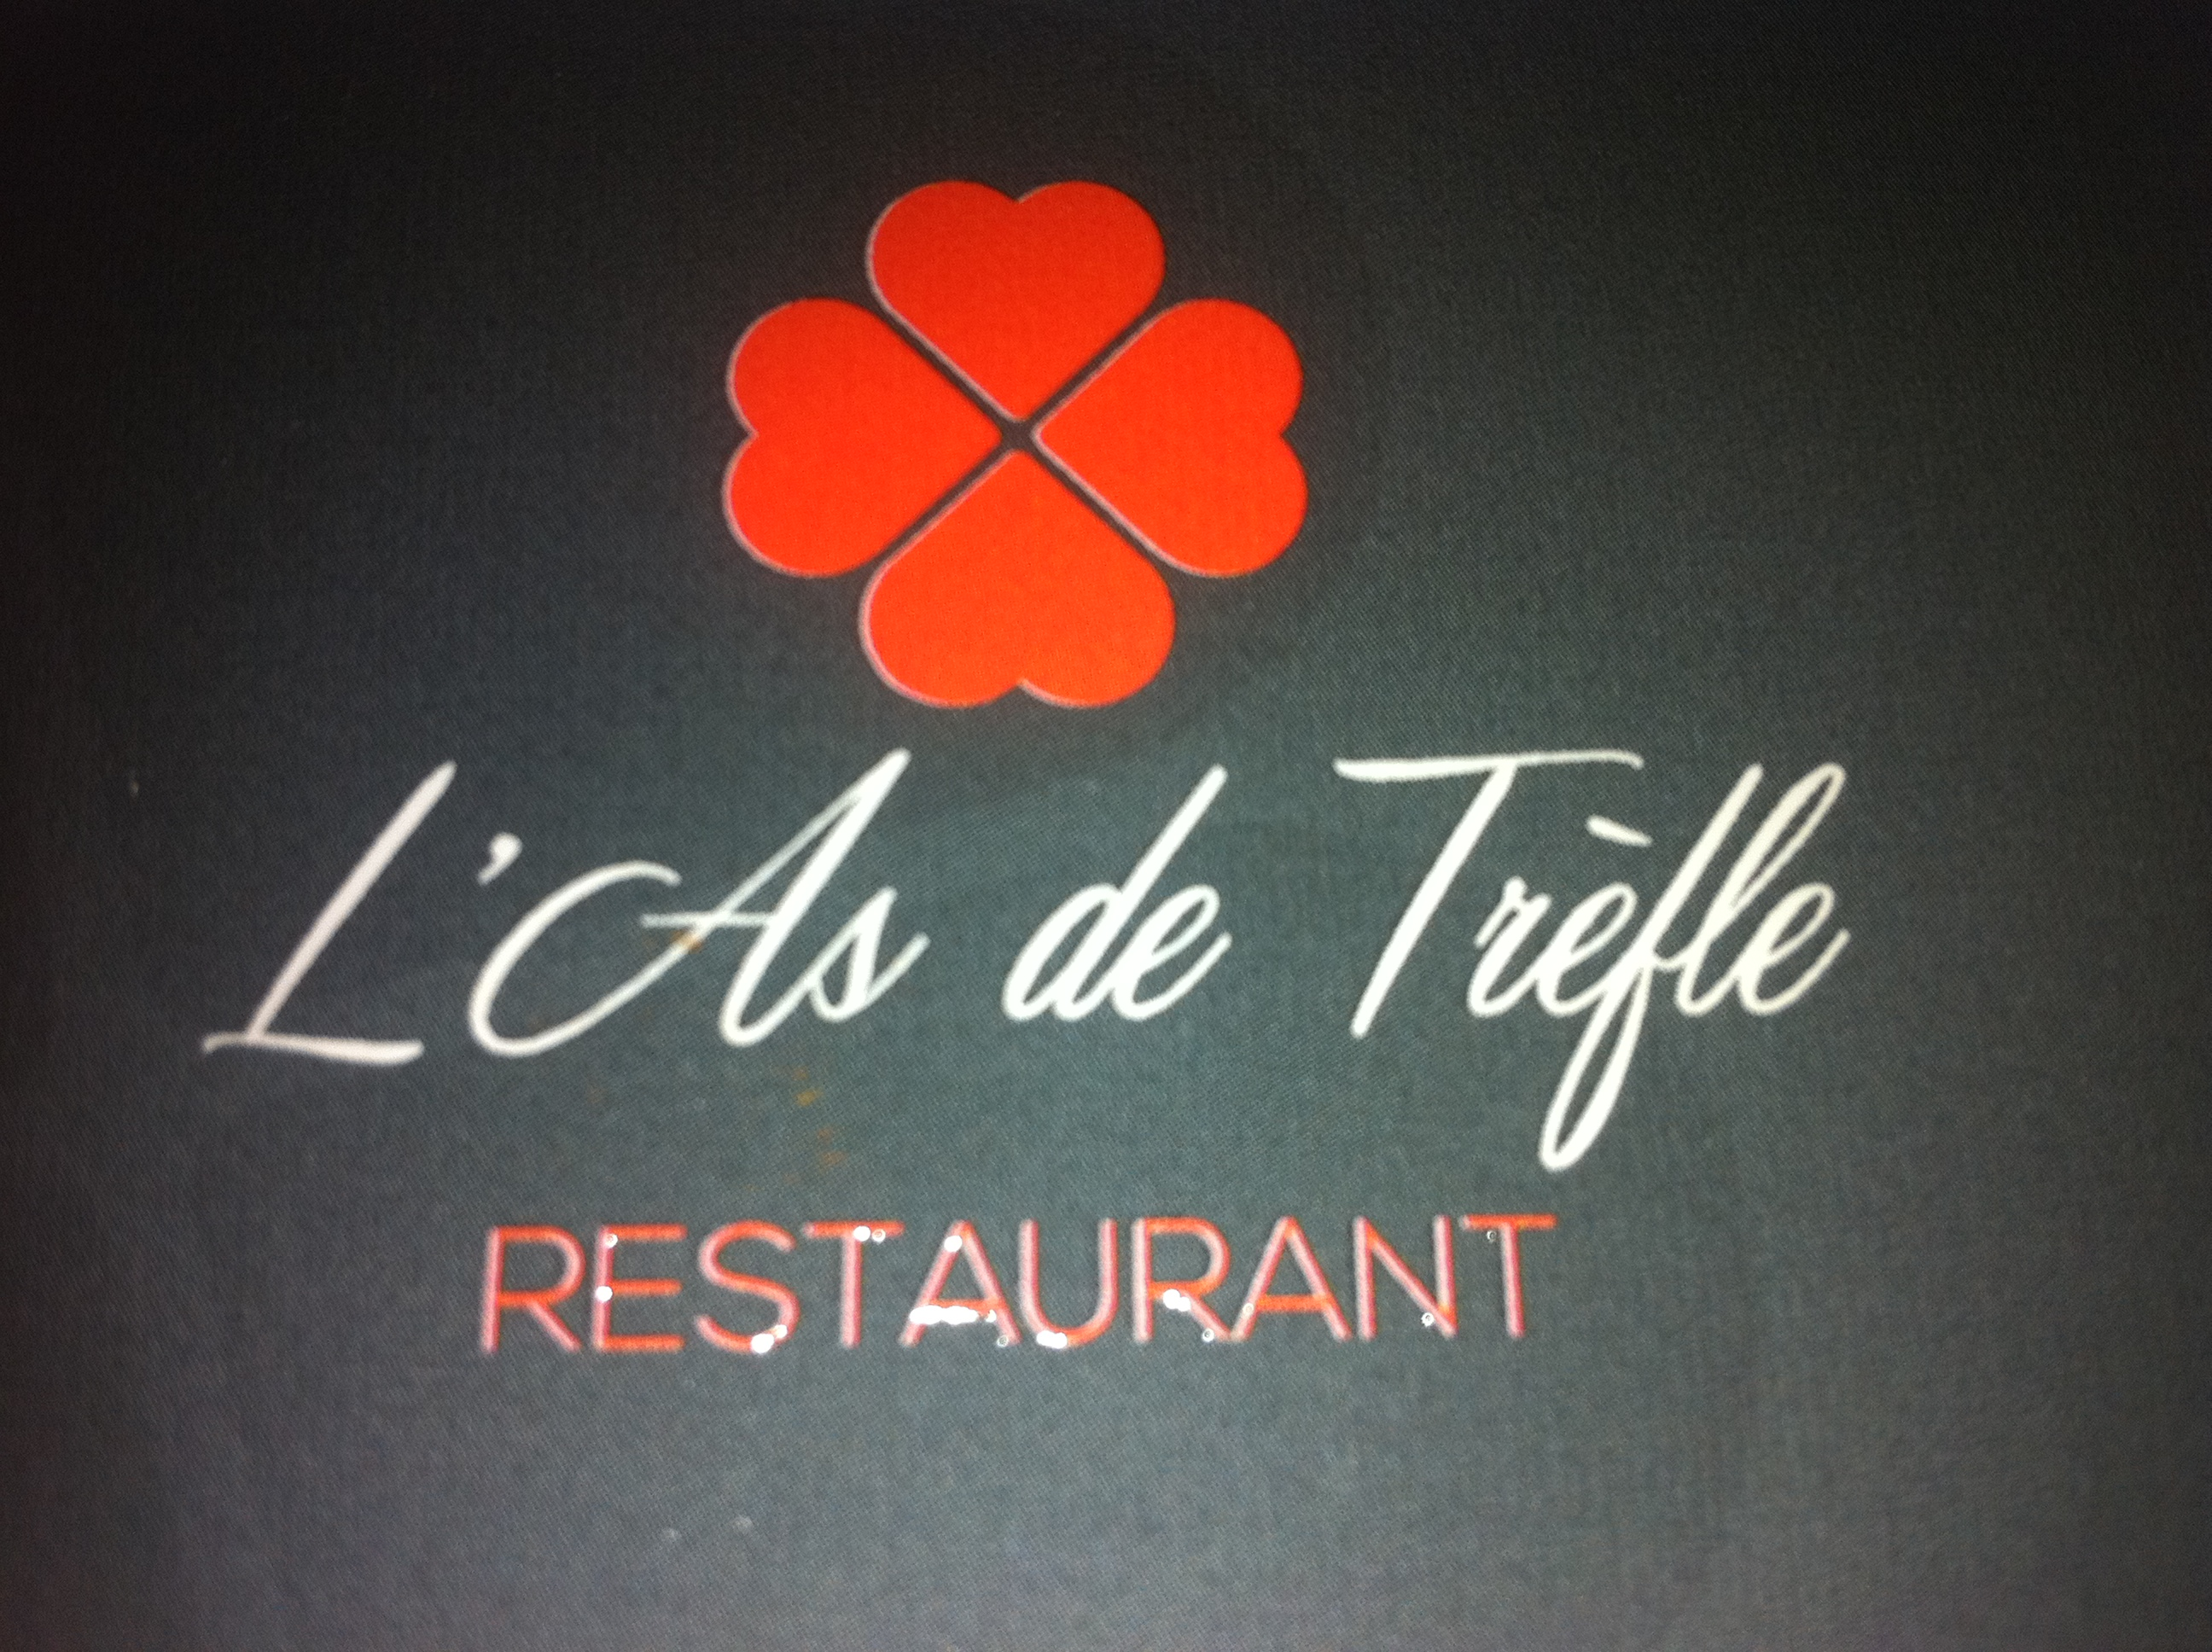 Logo Restaurant l'As de Trèfle-Calvados, chef Anthony Vallette.Cuisine créative.